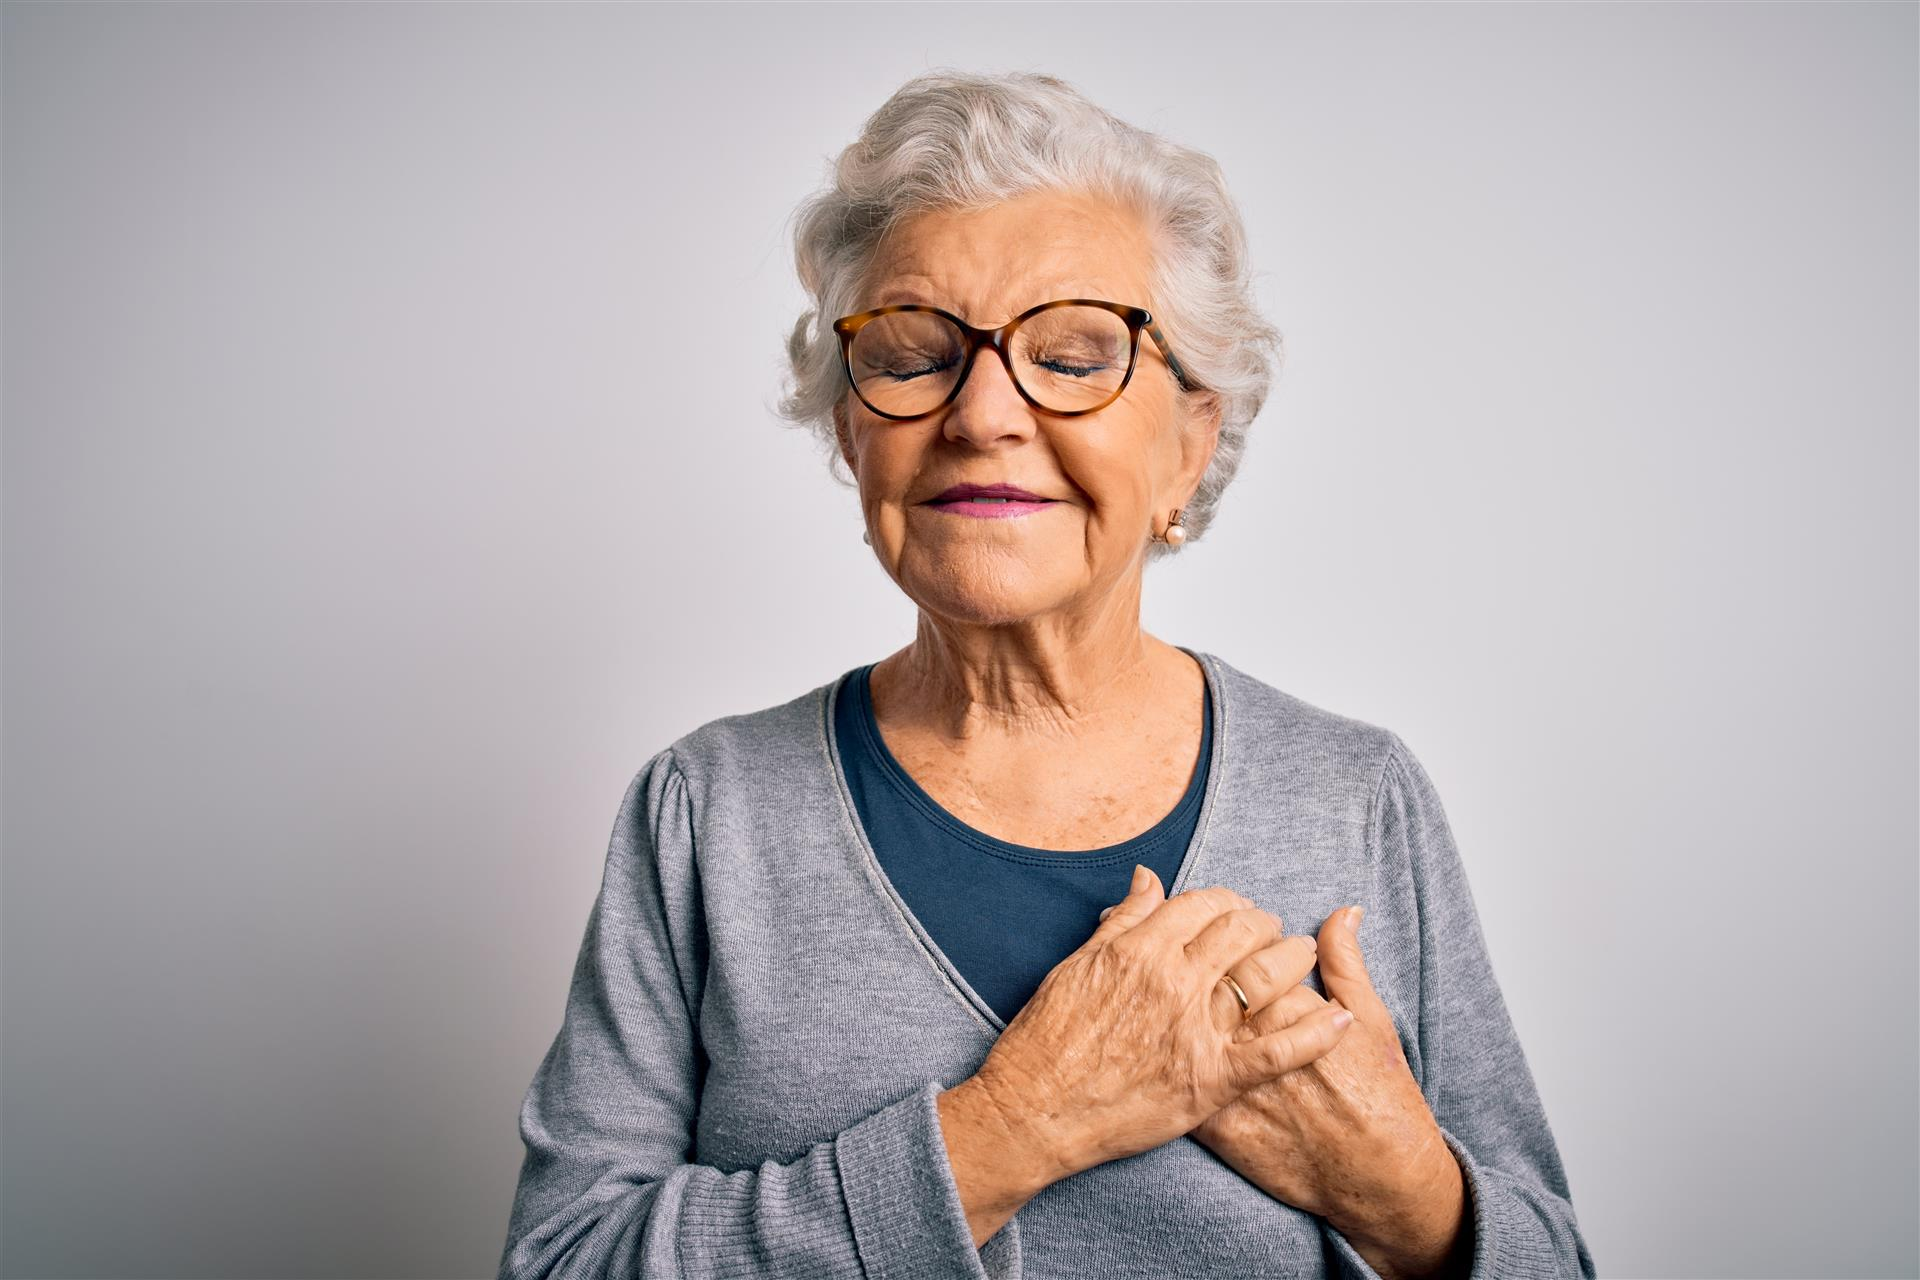 Finding Your True Identity in an Assisted Living Community